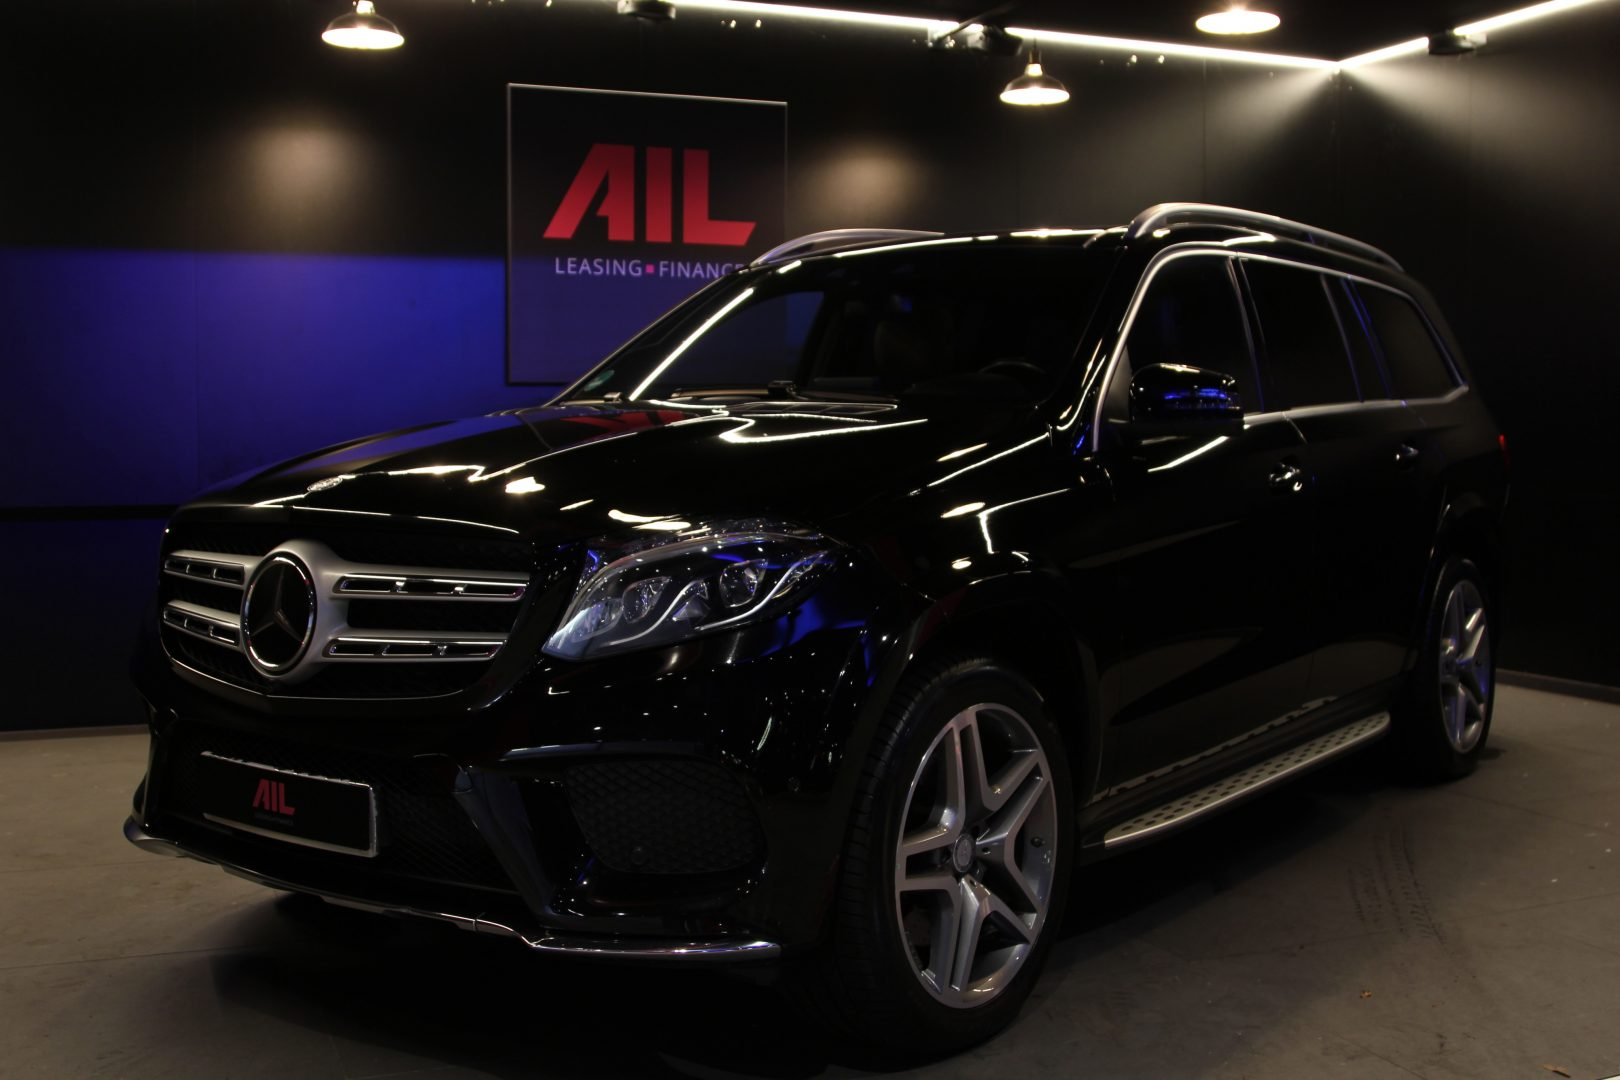 AIL Mercedes-Benz GLS 350 d 4MATIC 4